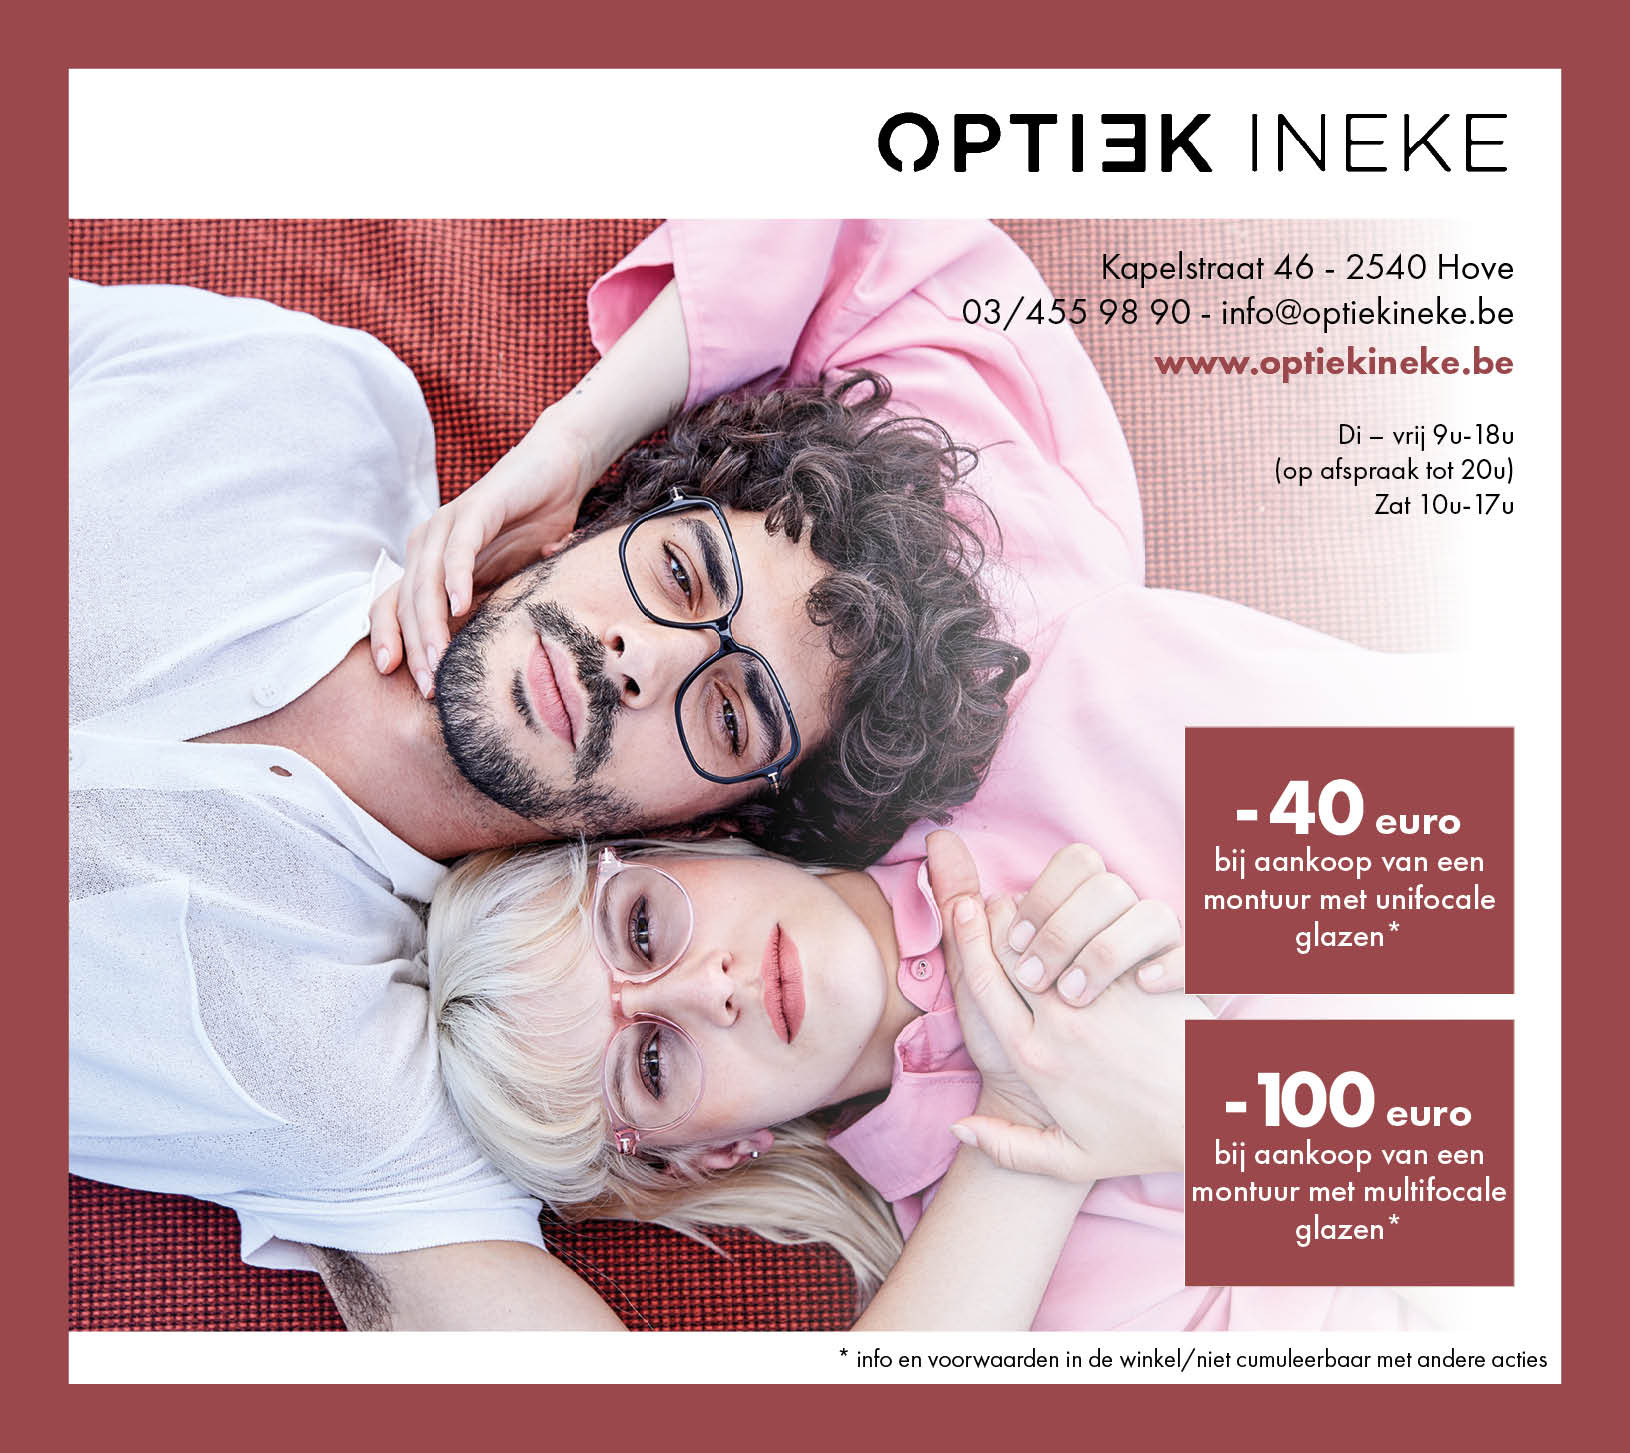 optiek_ineke_sept_2019.jpg